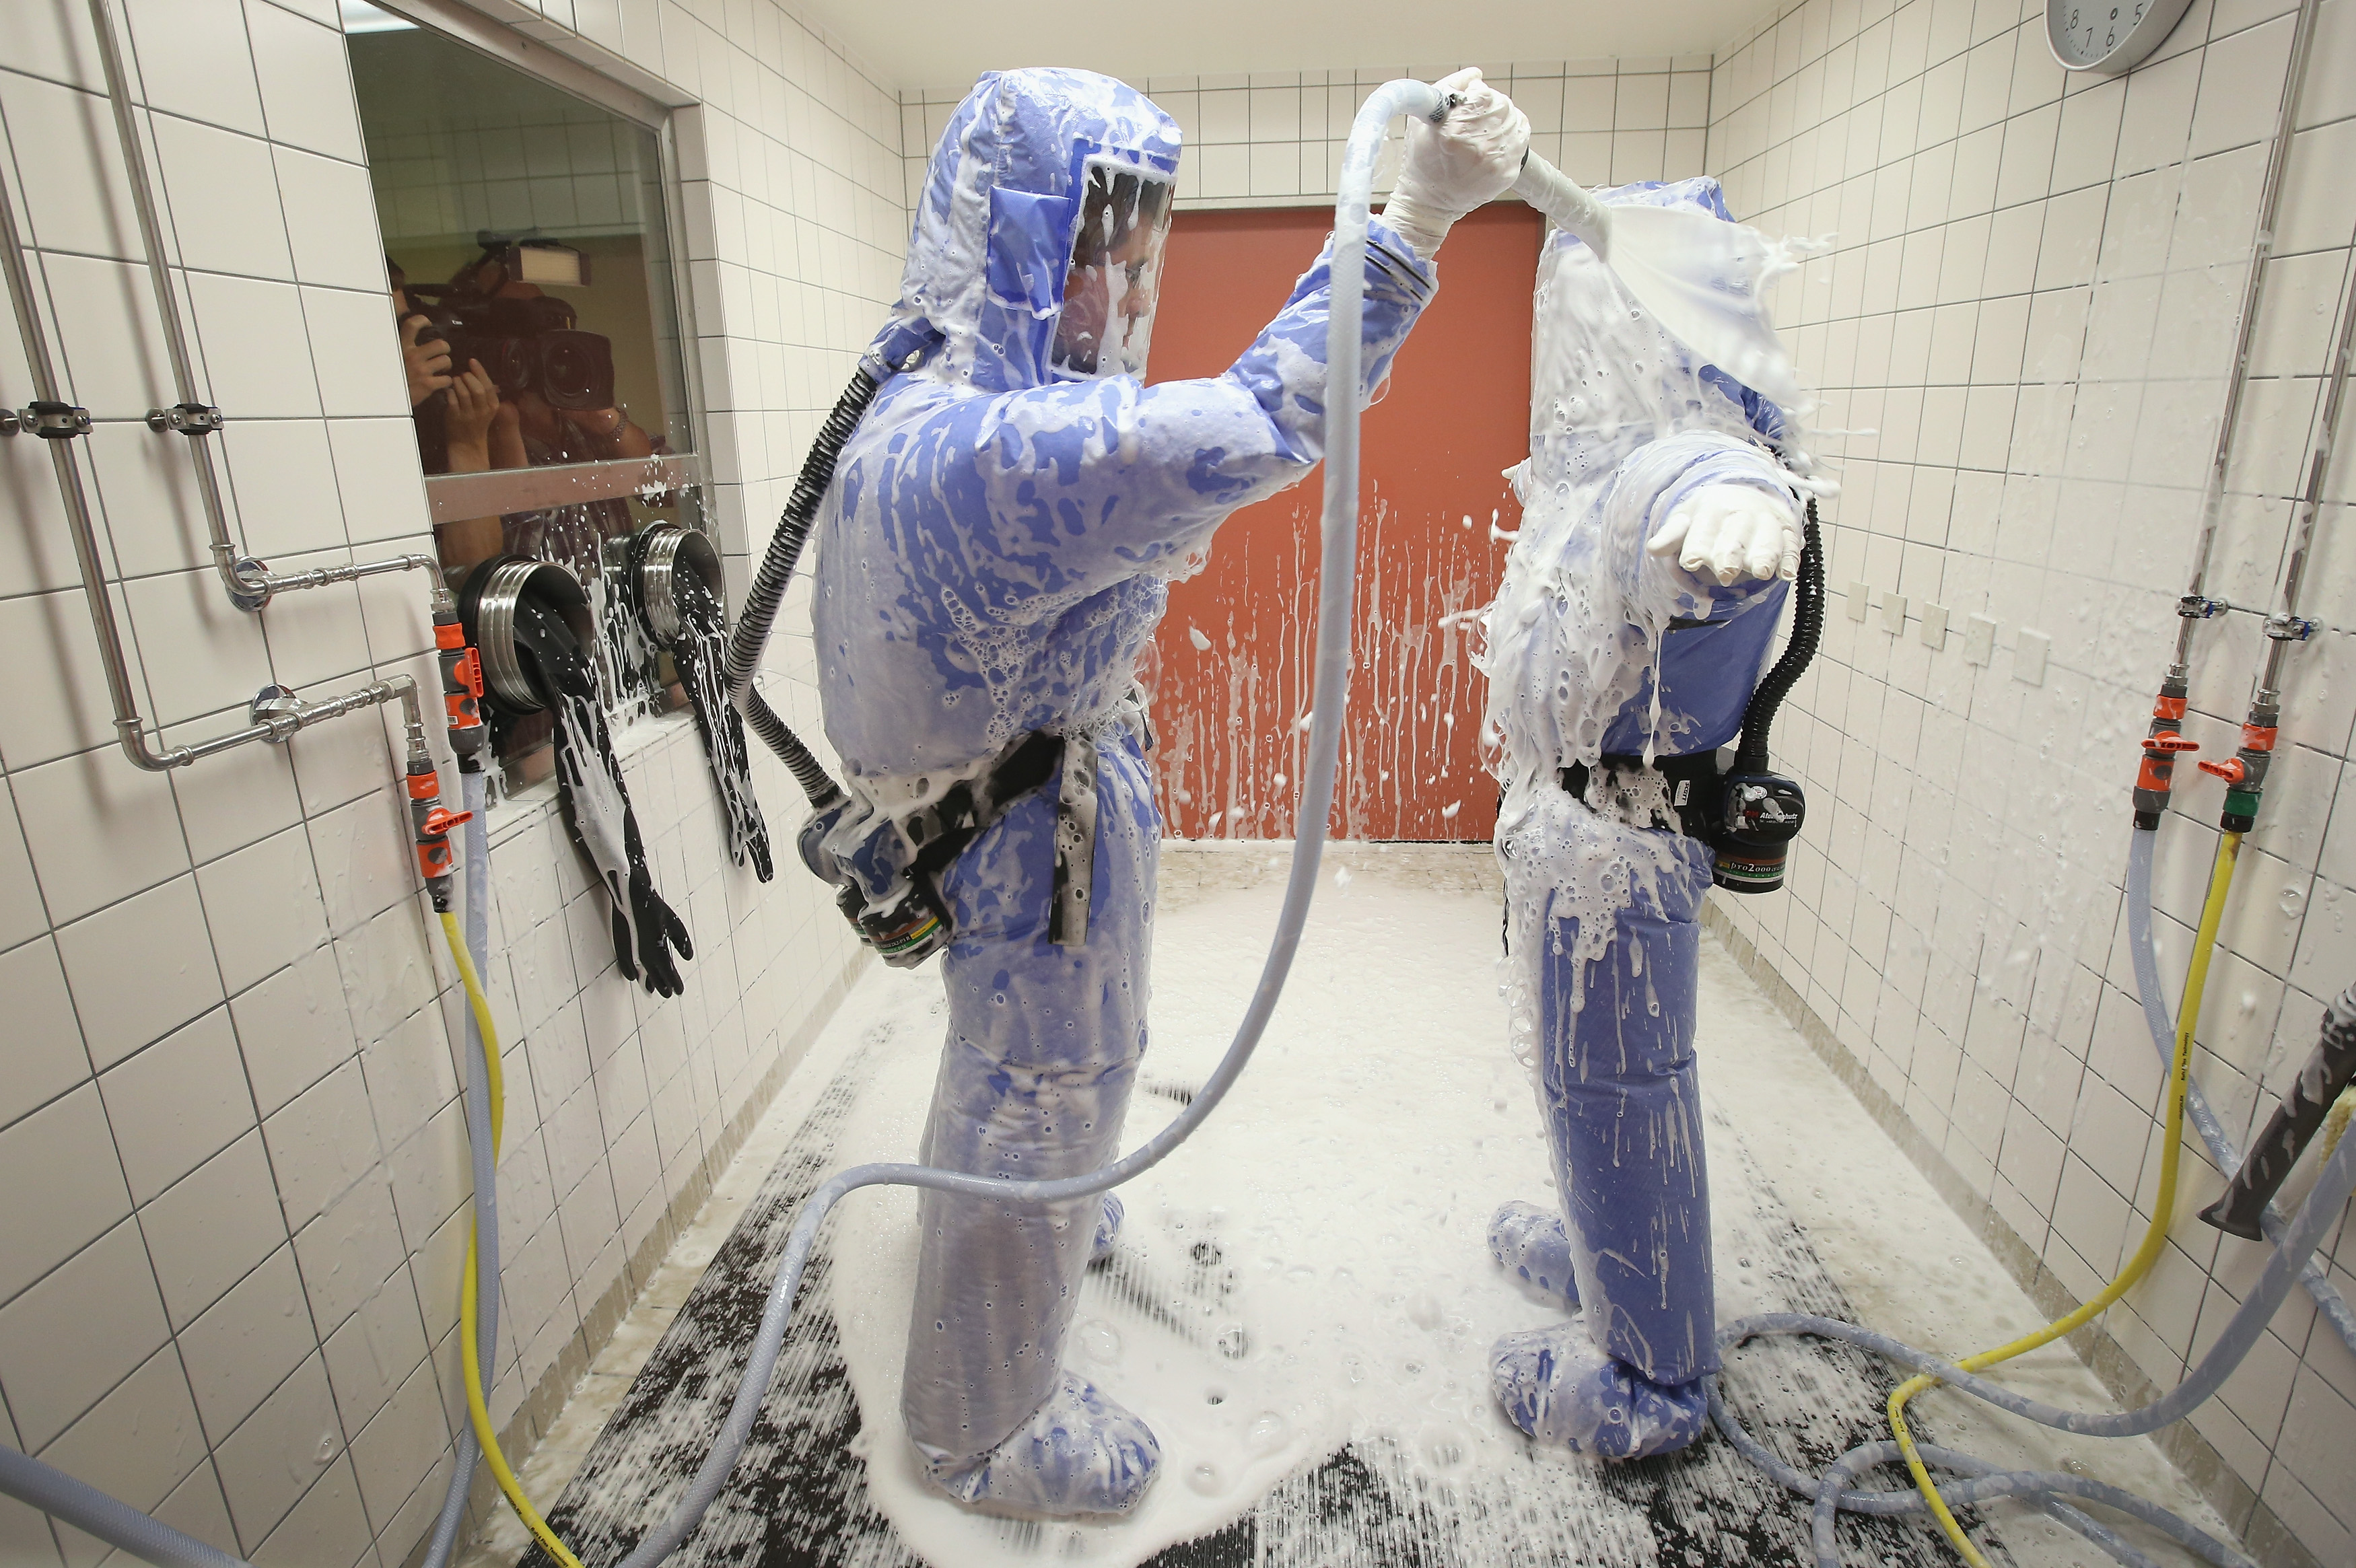 Berlin Hospital Prepares For Possible Ebola Cases